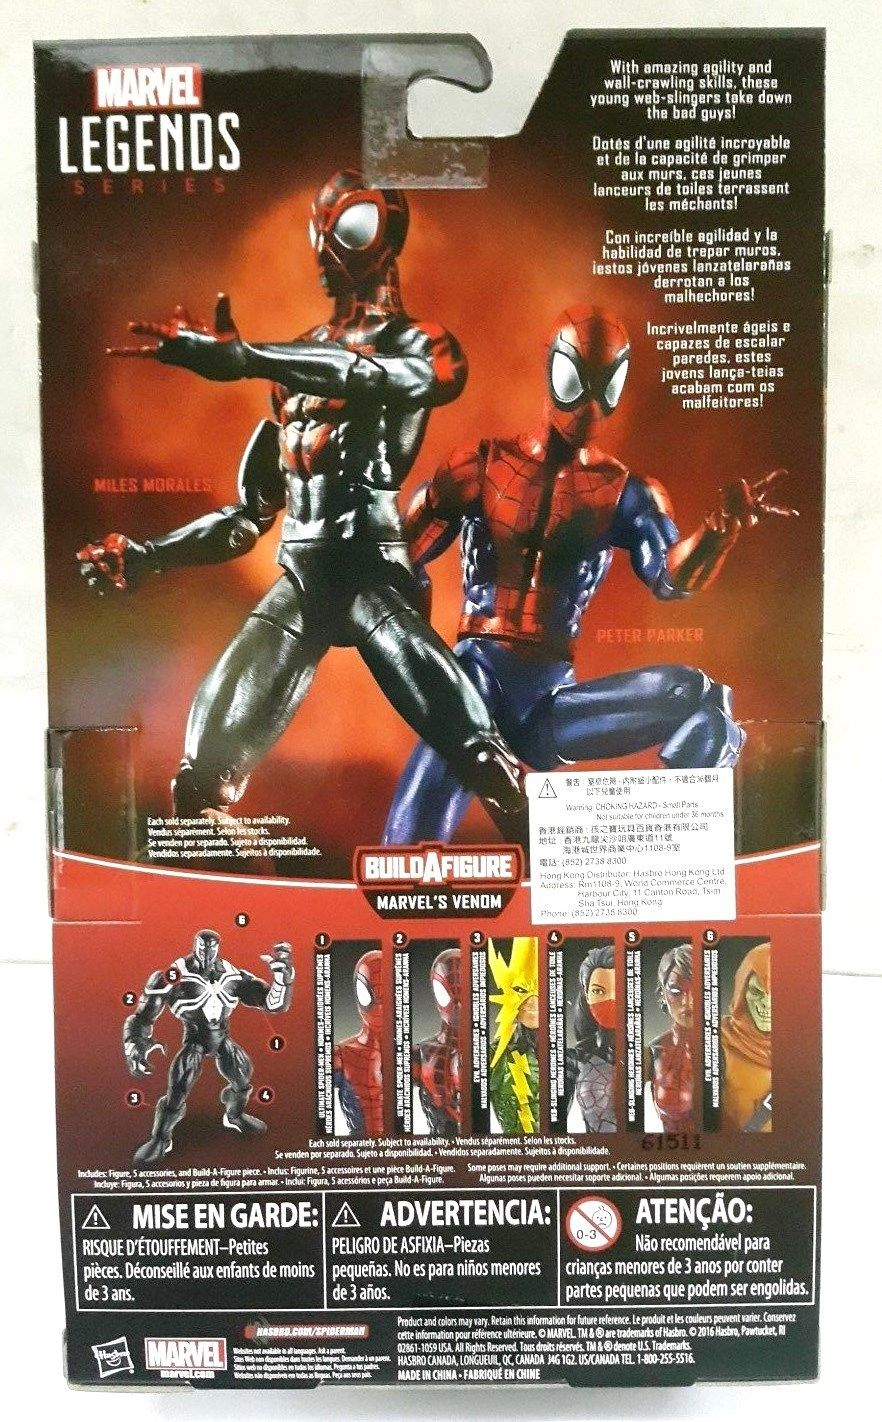 Spider-Man Legends Space Venom Wave on eBay!